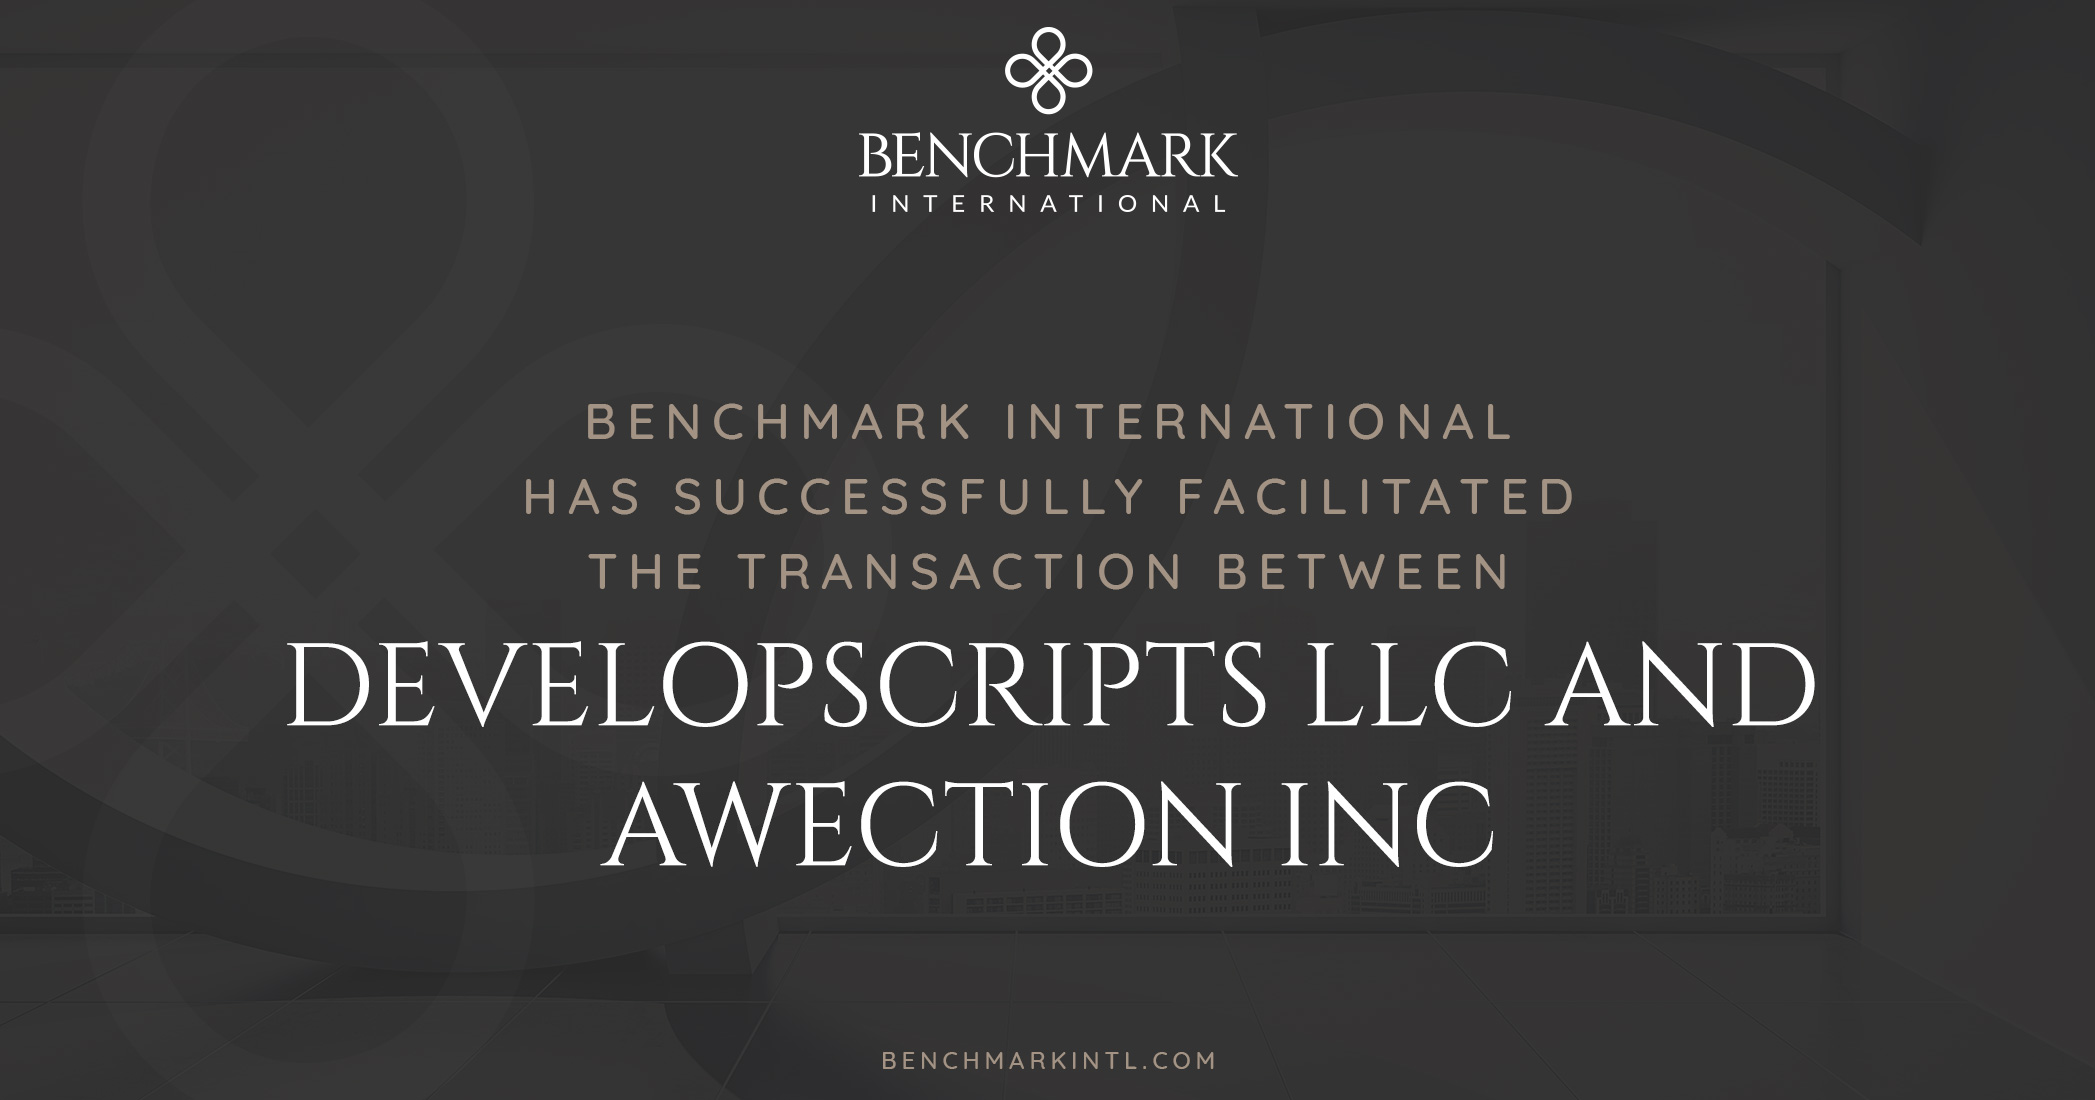 Benchmark International Successfully Facilitated the Transaction Between DevelopScripts LLC and Awection Inc